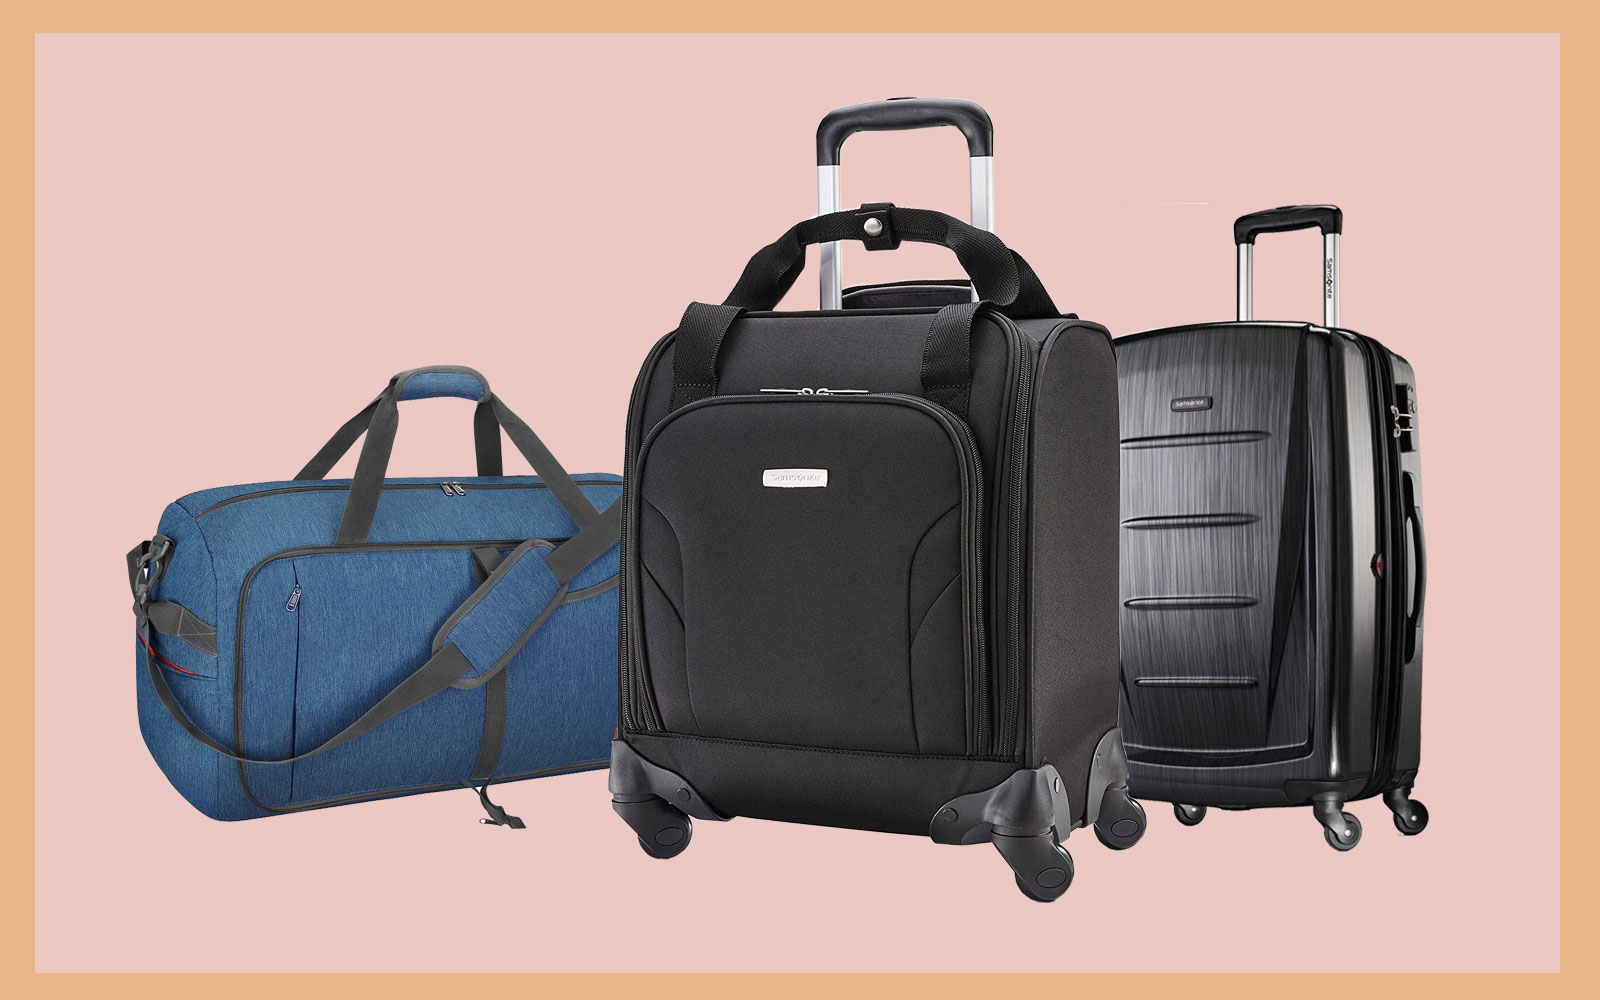 samsonite luggage, canway carry on